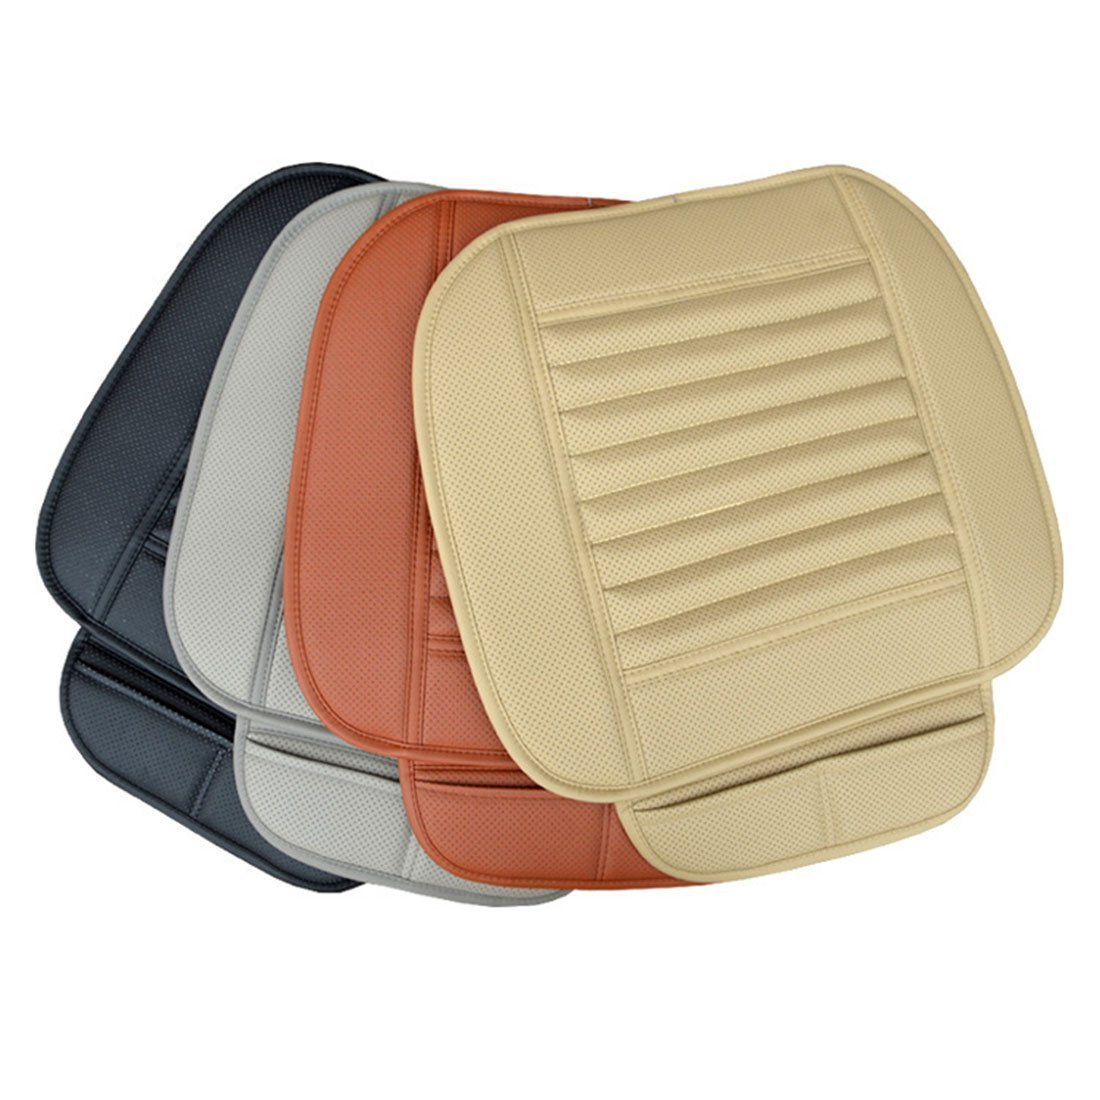 Leather Charcoal Car Seat Cushion-Absorbing odor (Four Seasons Universal)